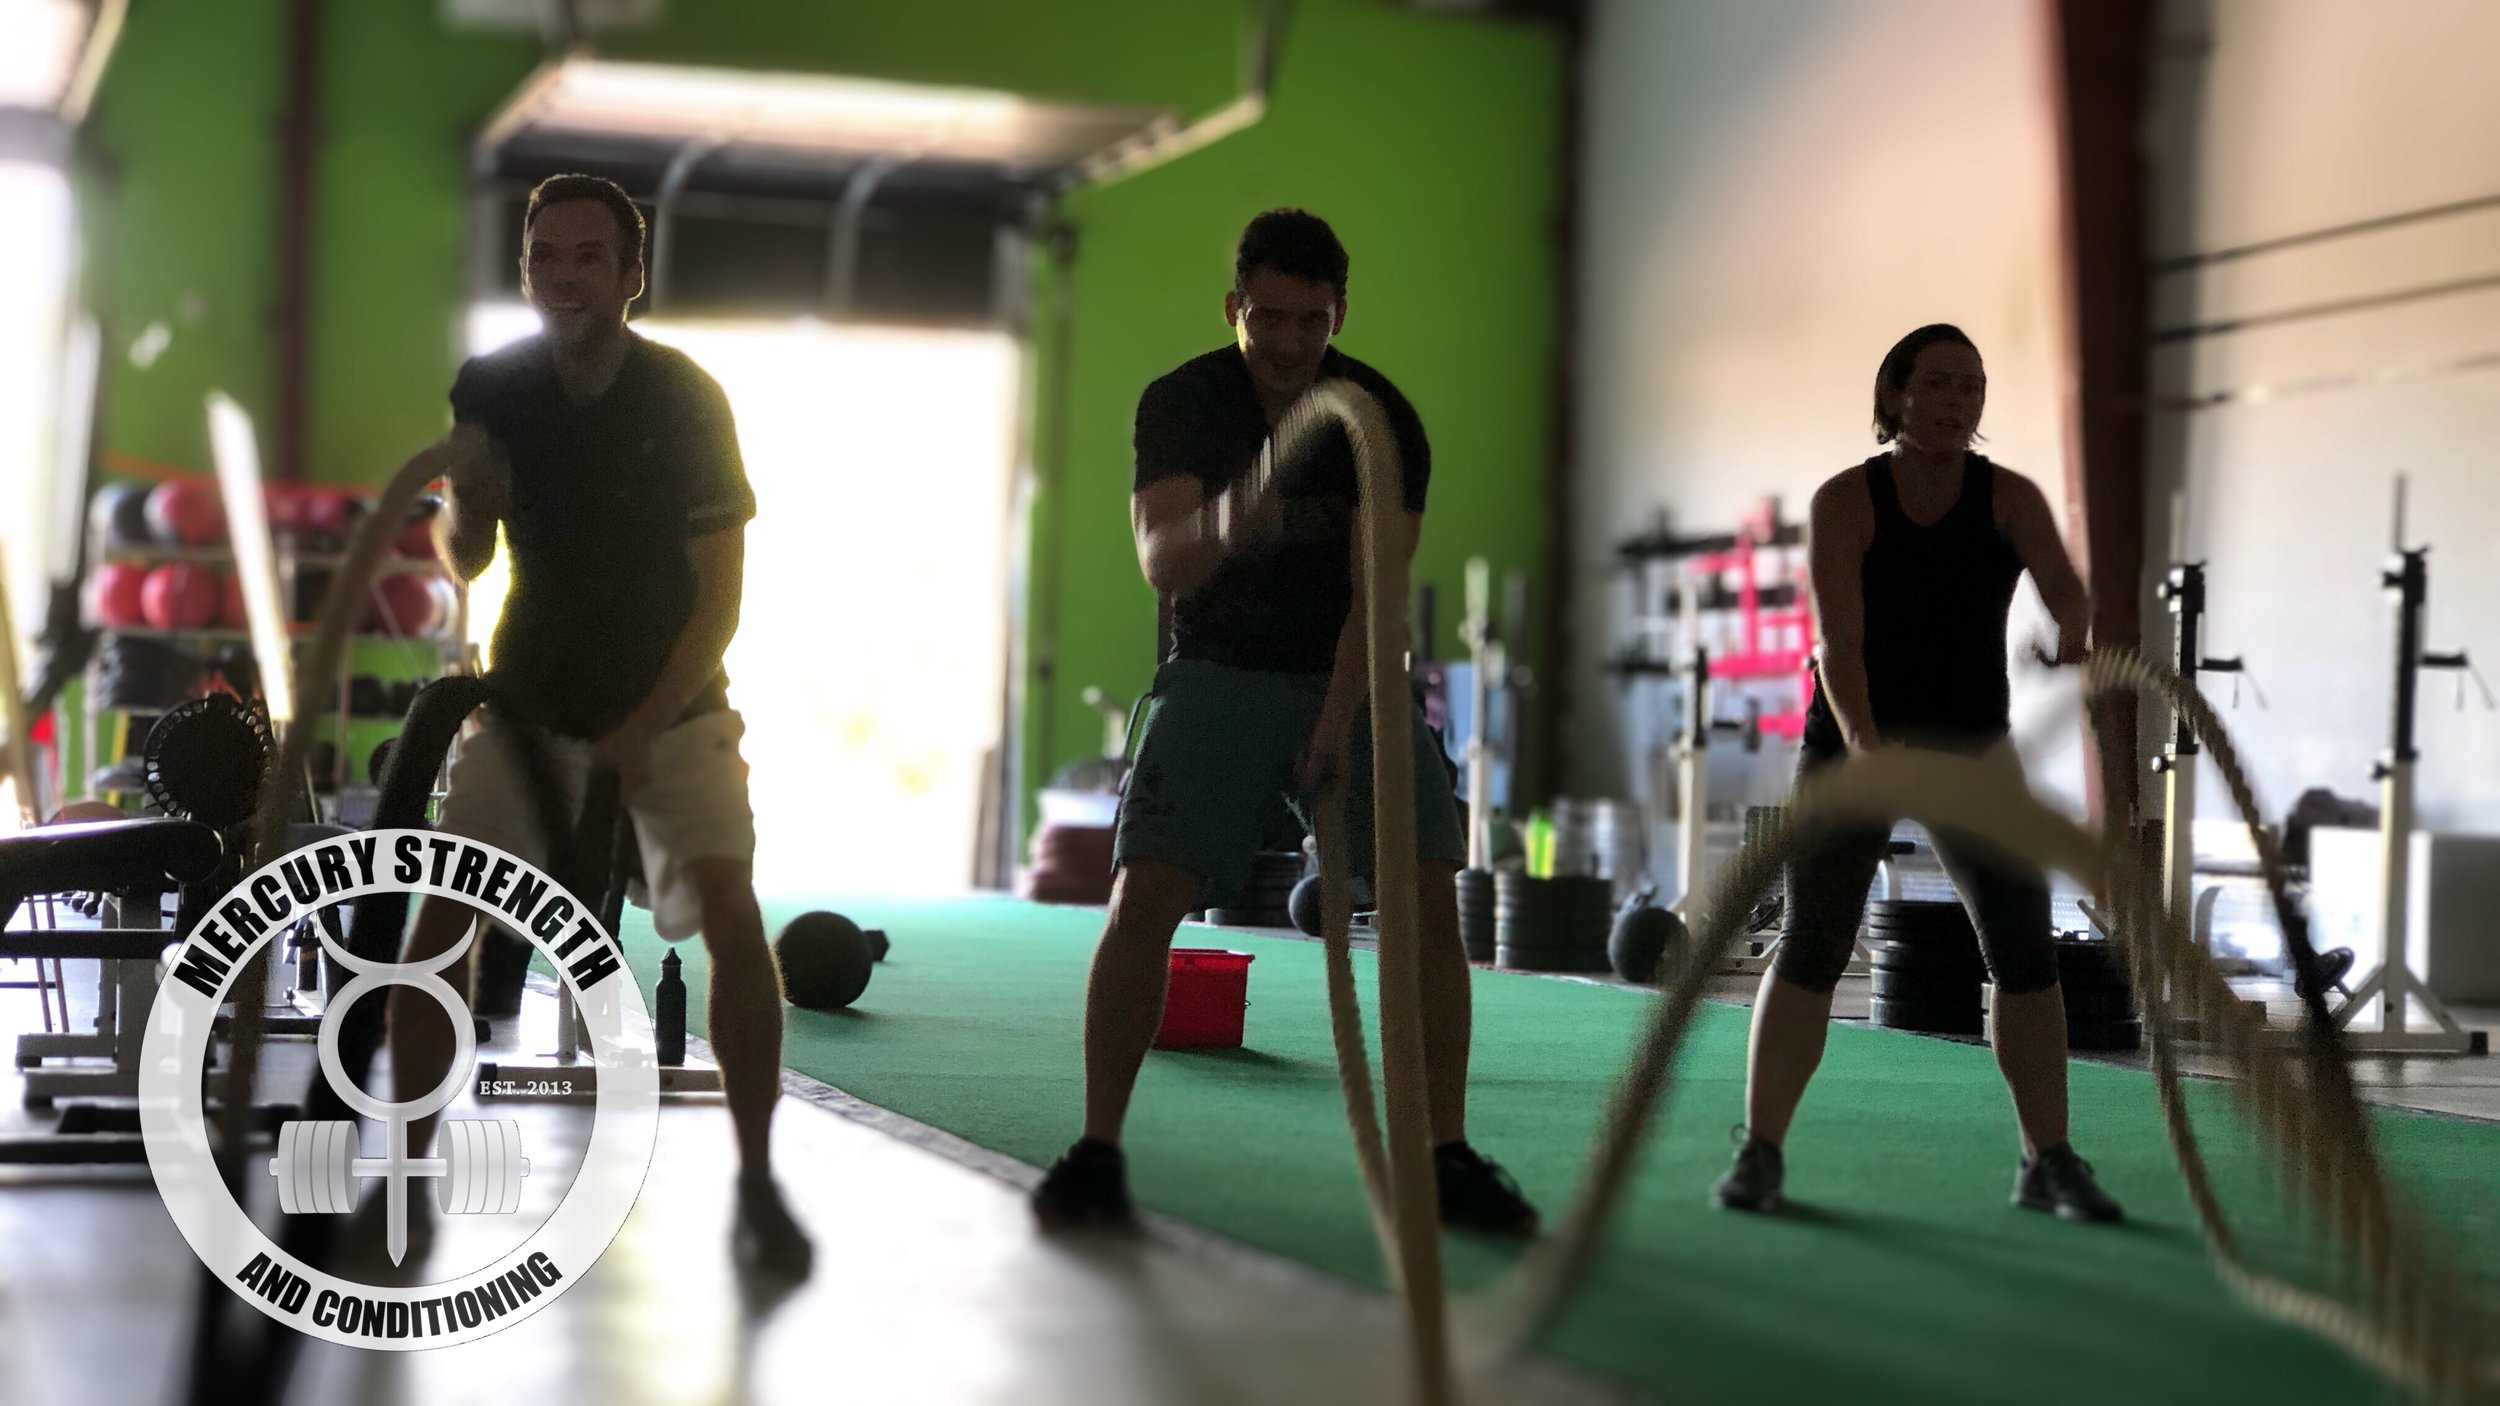 Ryan, Eddy, and Lindsey with some battle ropes on a Saturday